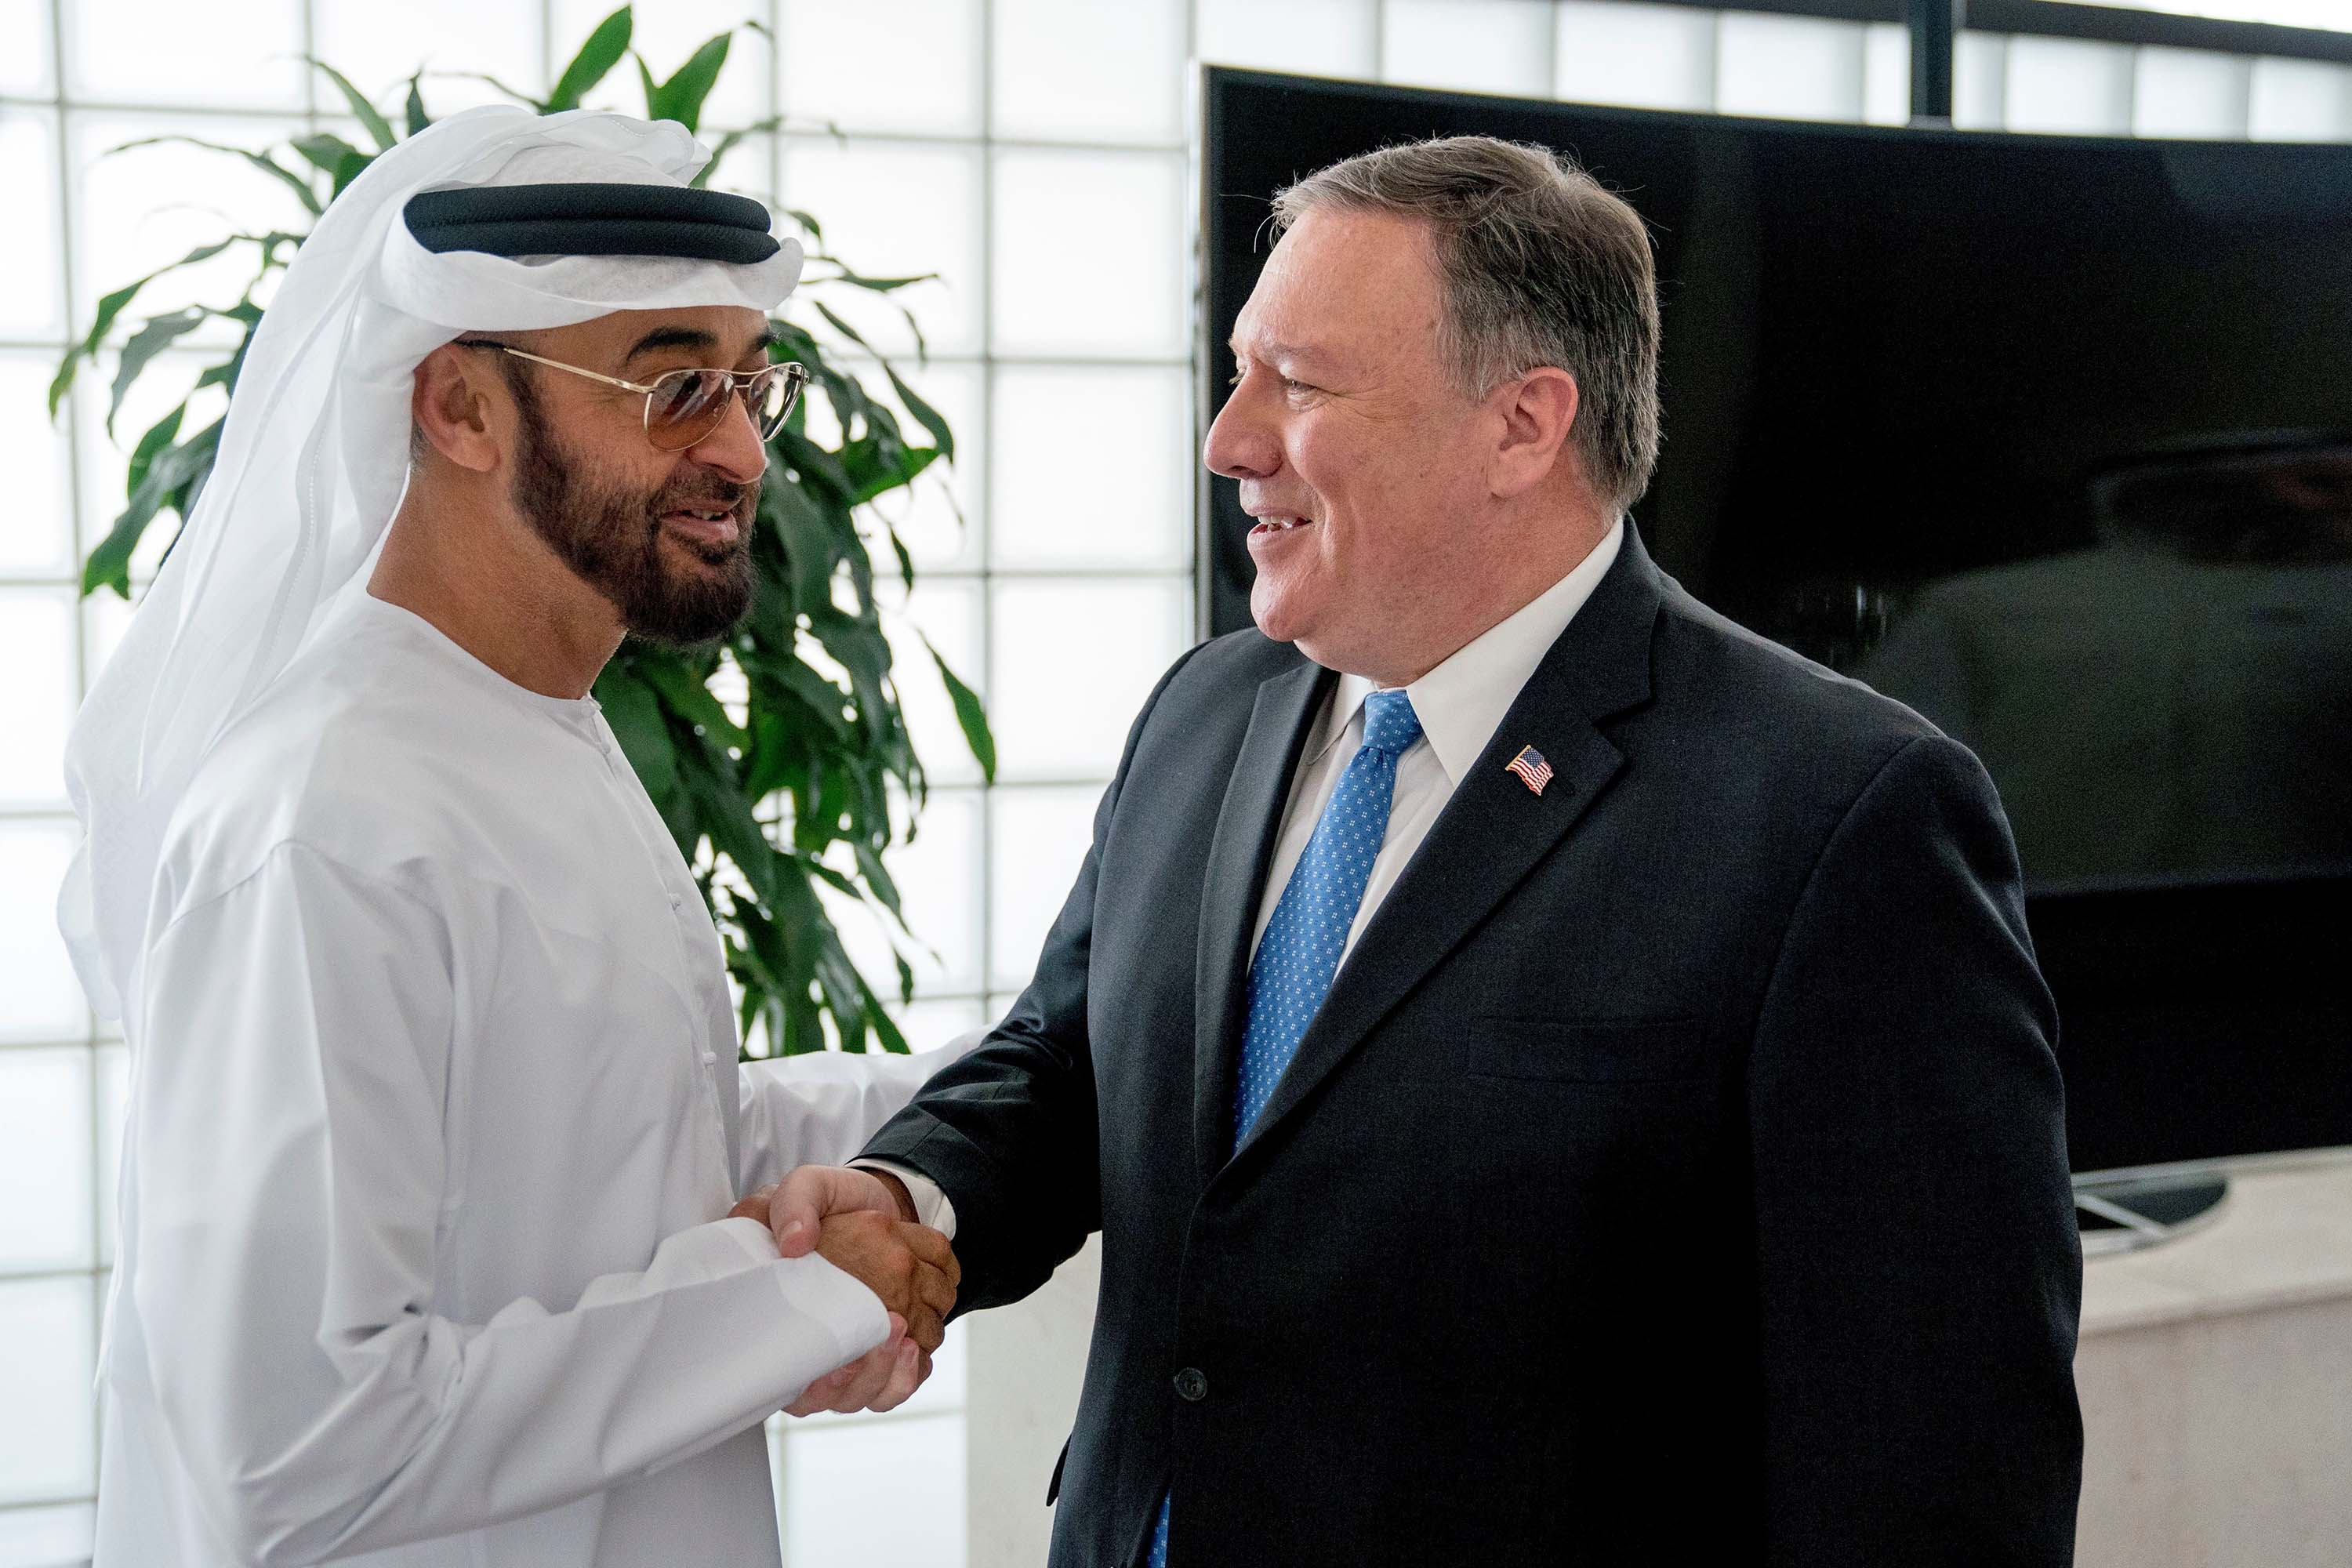 The US cleared the way for a new arms sale to the UAE, despite evidence it violated the last one